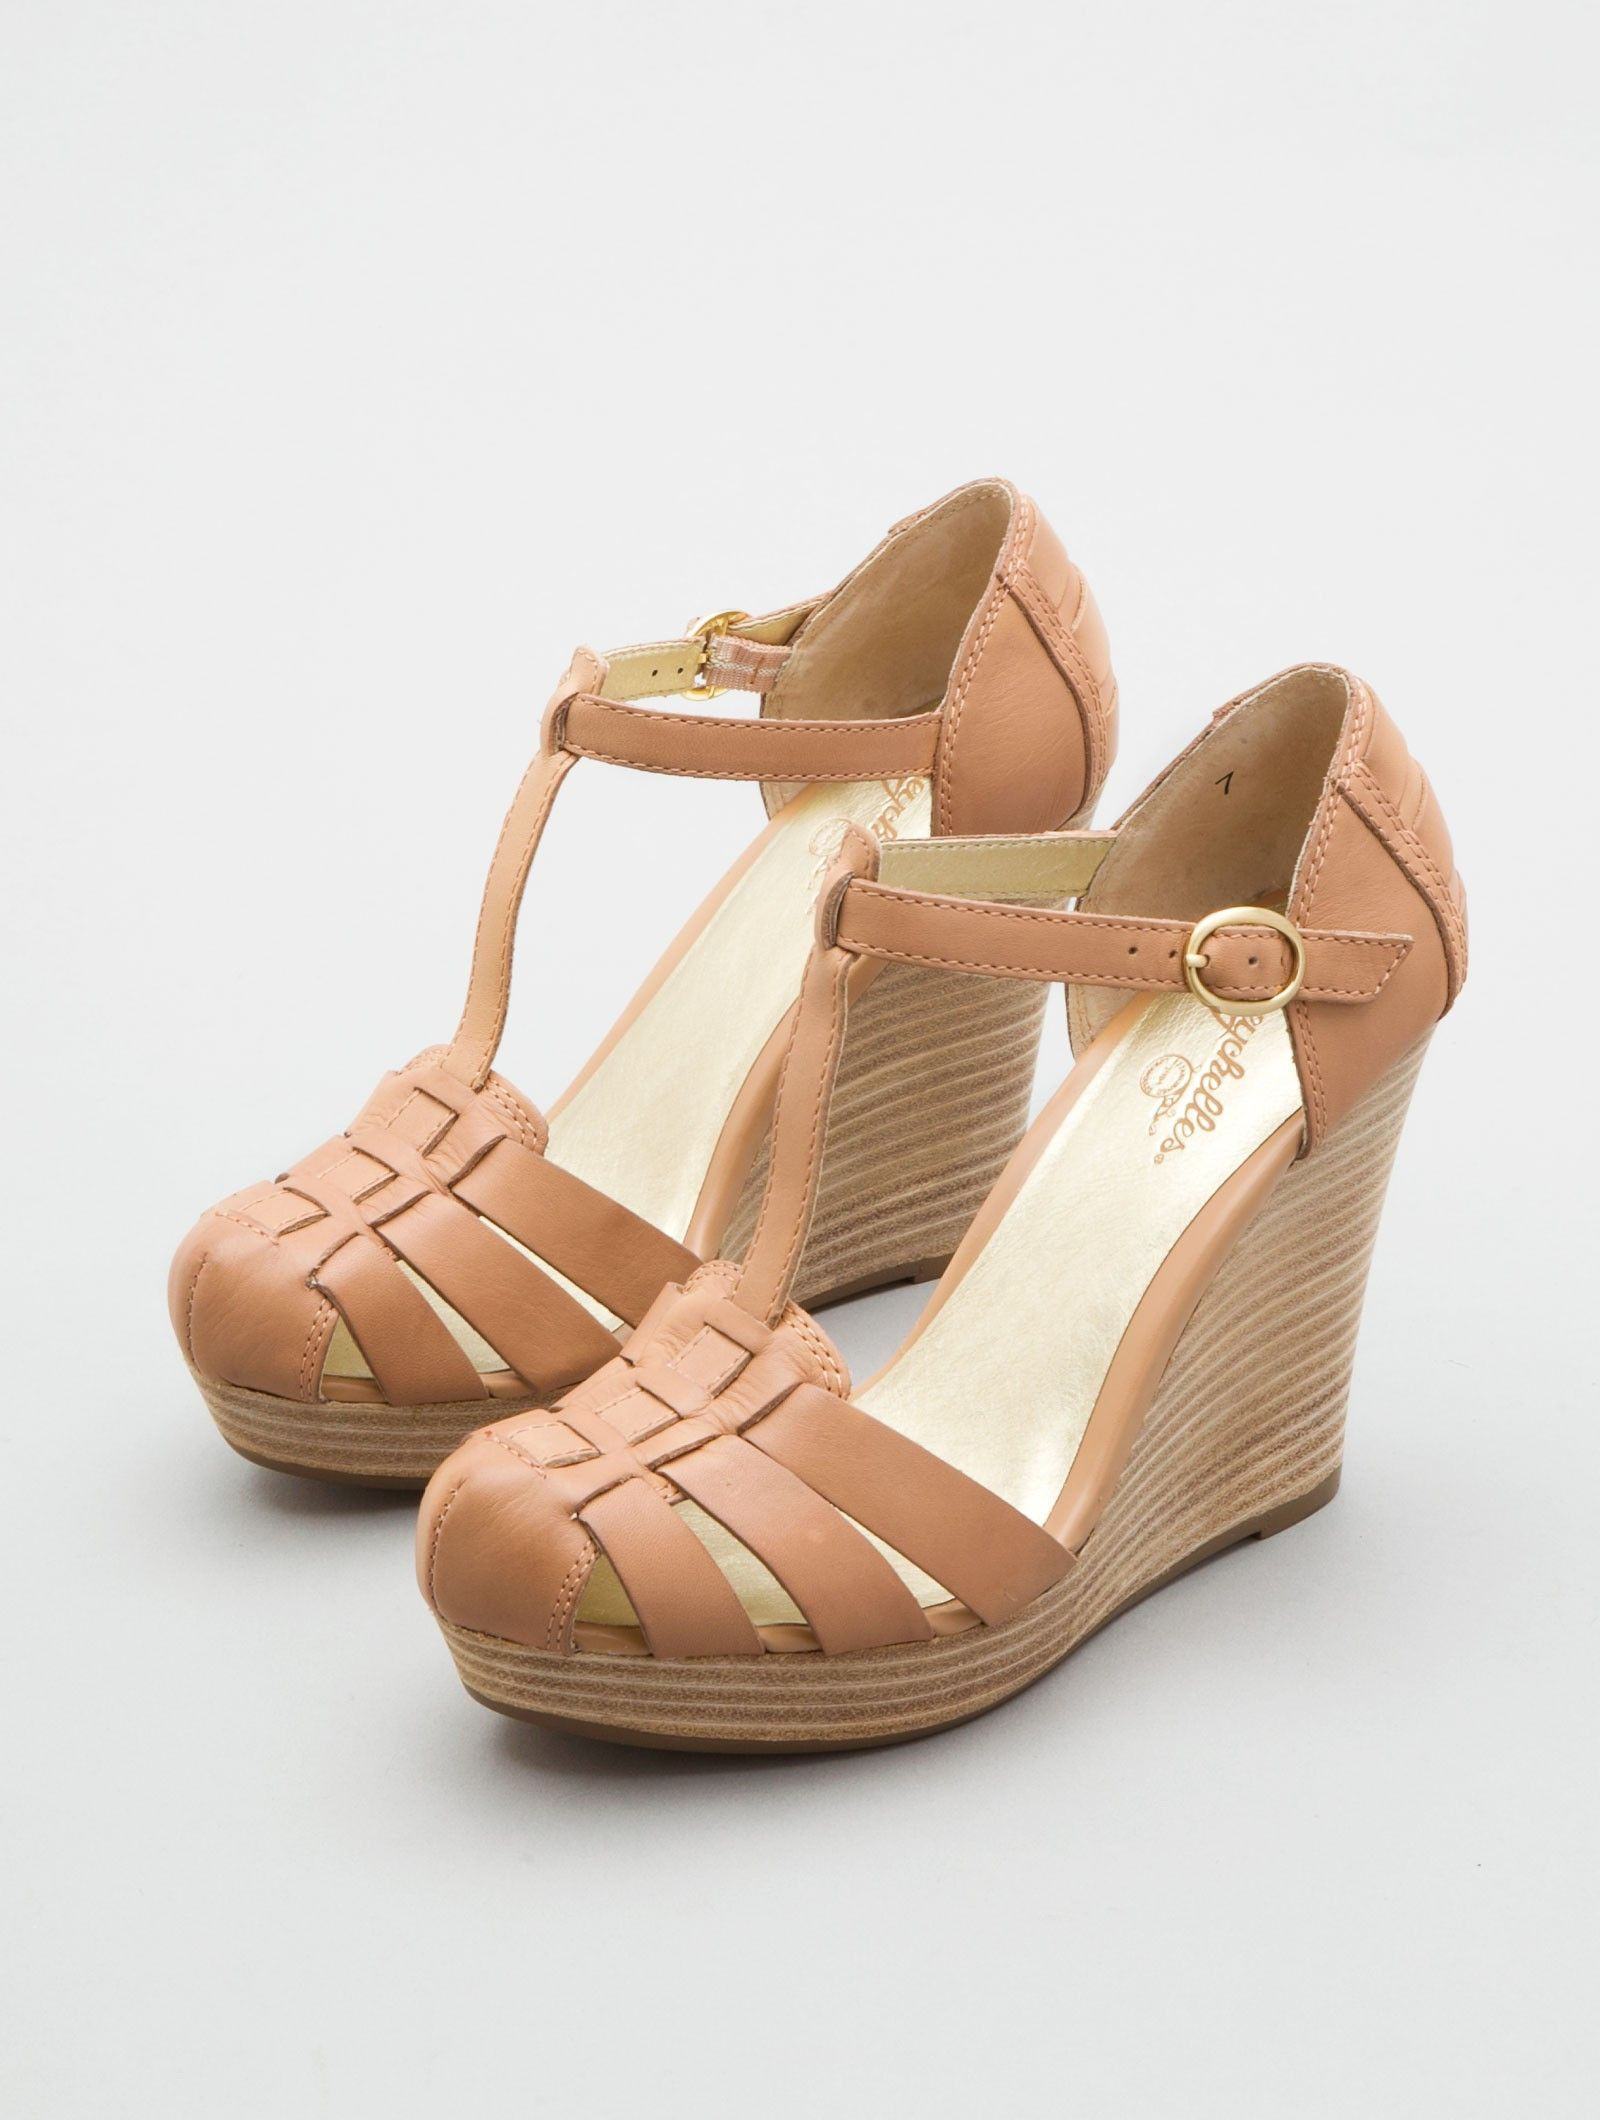 7074522e549 GOOD INTENTIONS by Seychelles - SHOES - wedges   platforms - Lori s  Designer Shoes